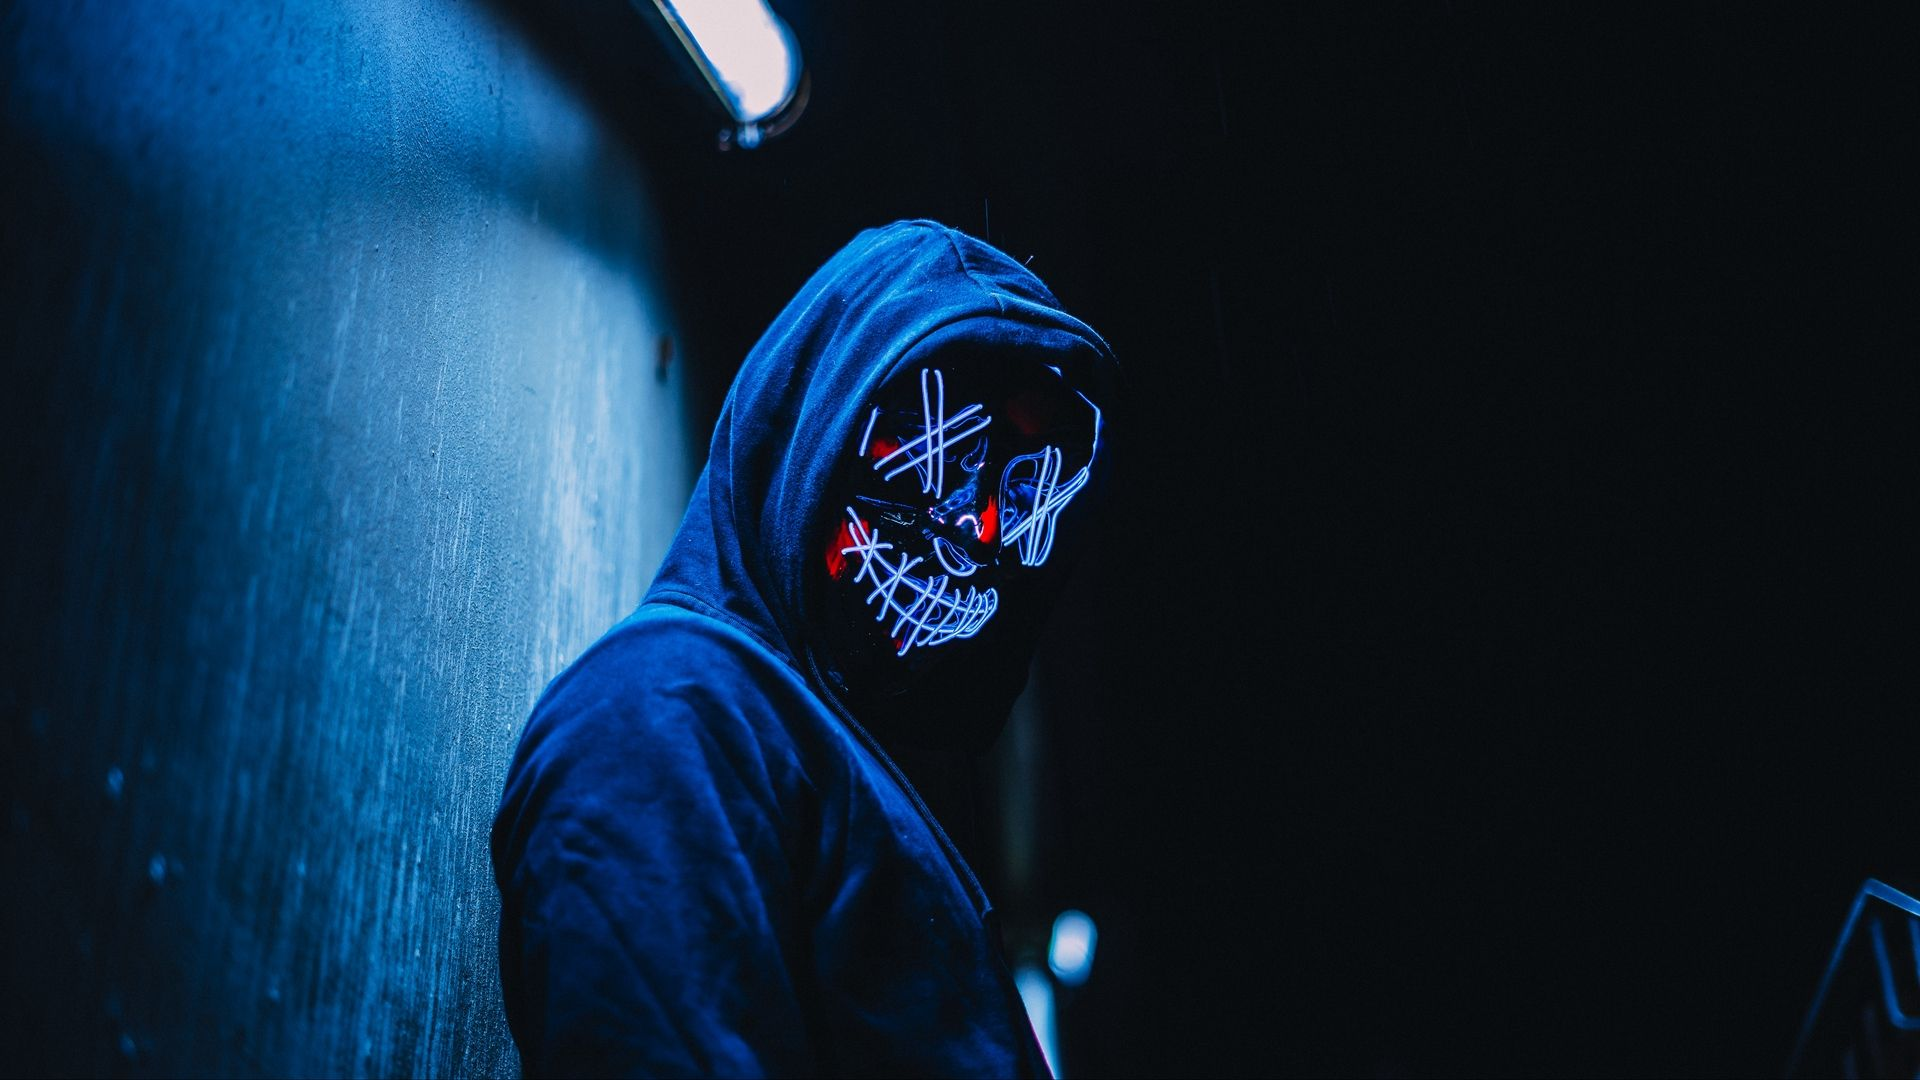 Anonymous Hacker Mask Wallpapers Top Free Anonymous Hacker Mask Backgrounds Wallpaperaccess